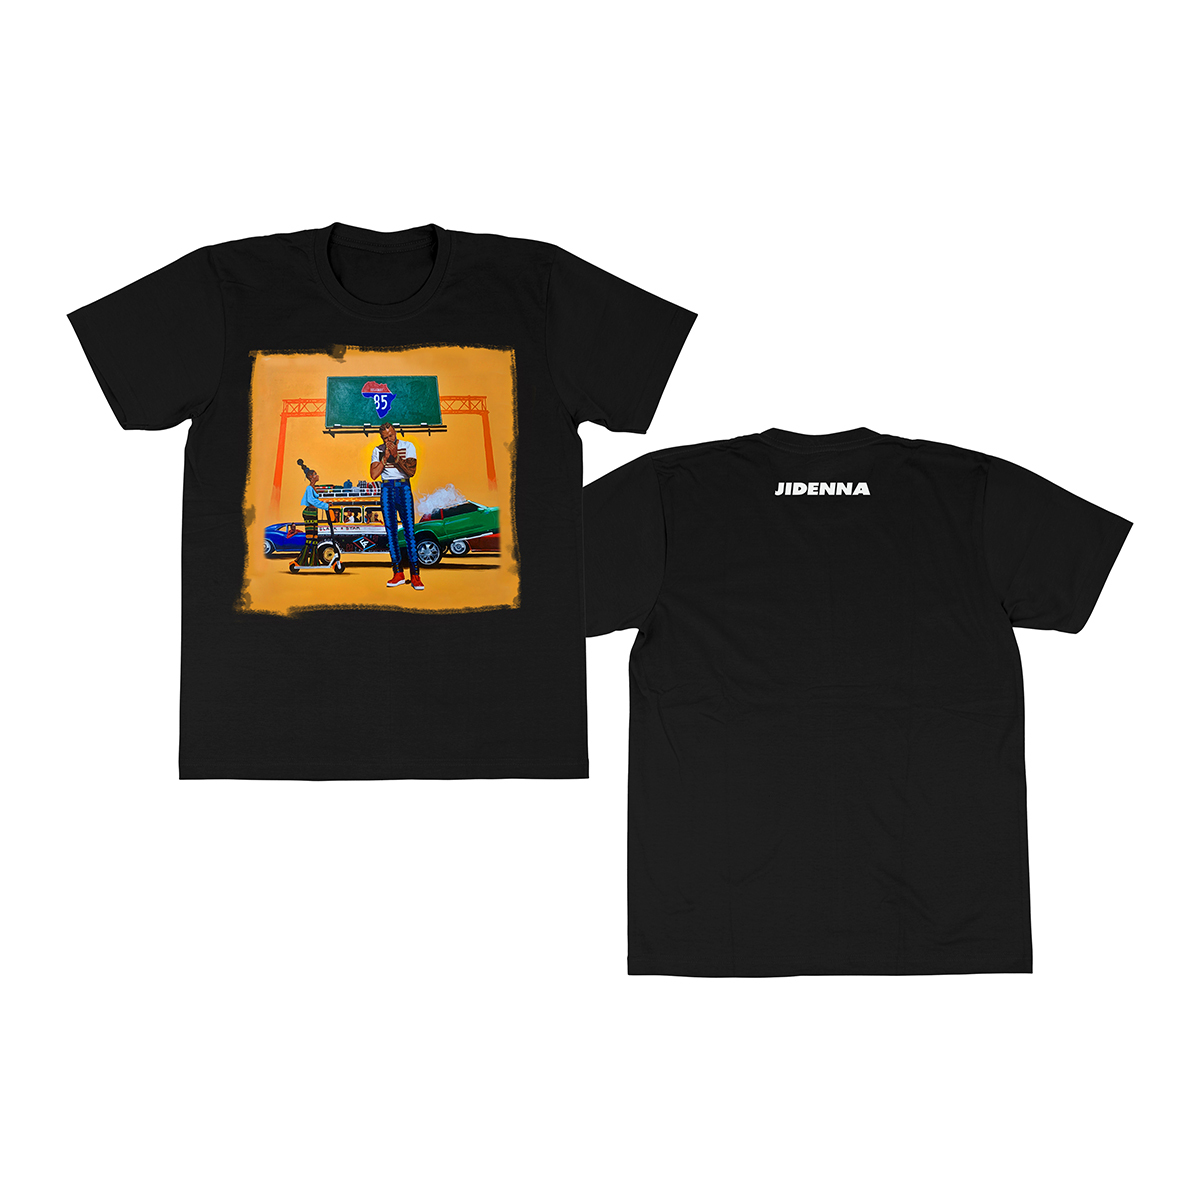 85 to Africa Album Cover T-Shirt + Digital Download